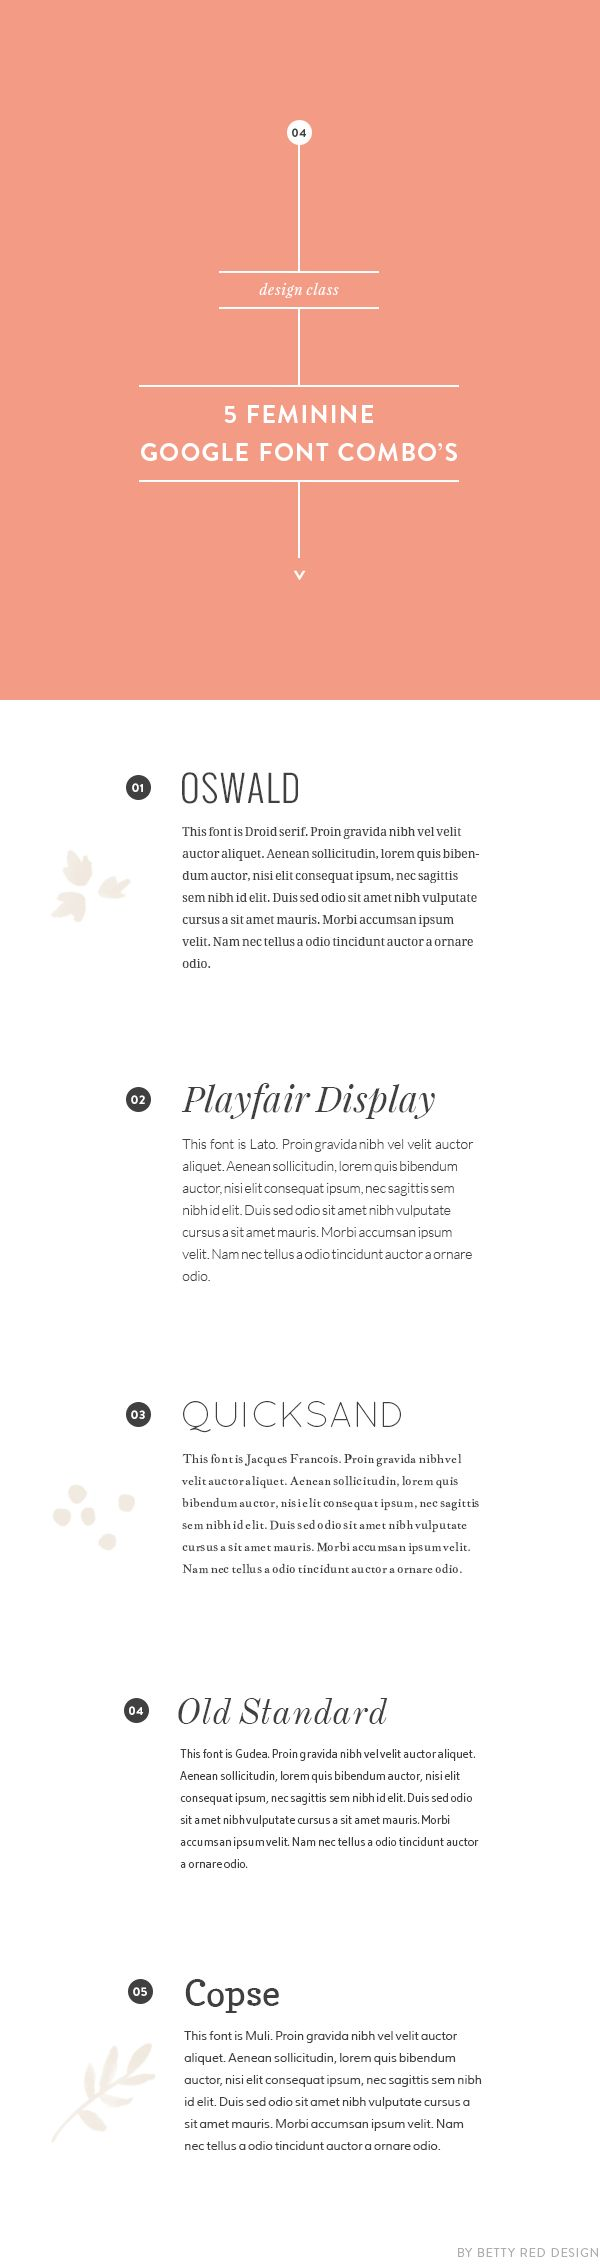 Resume Font Pairings | CV Writing Services